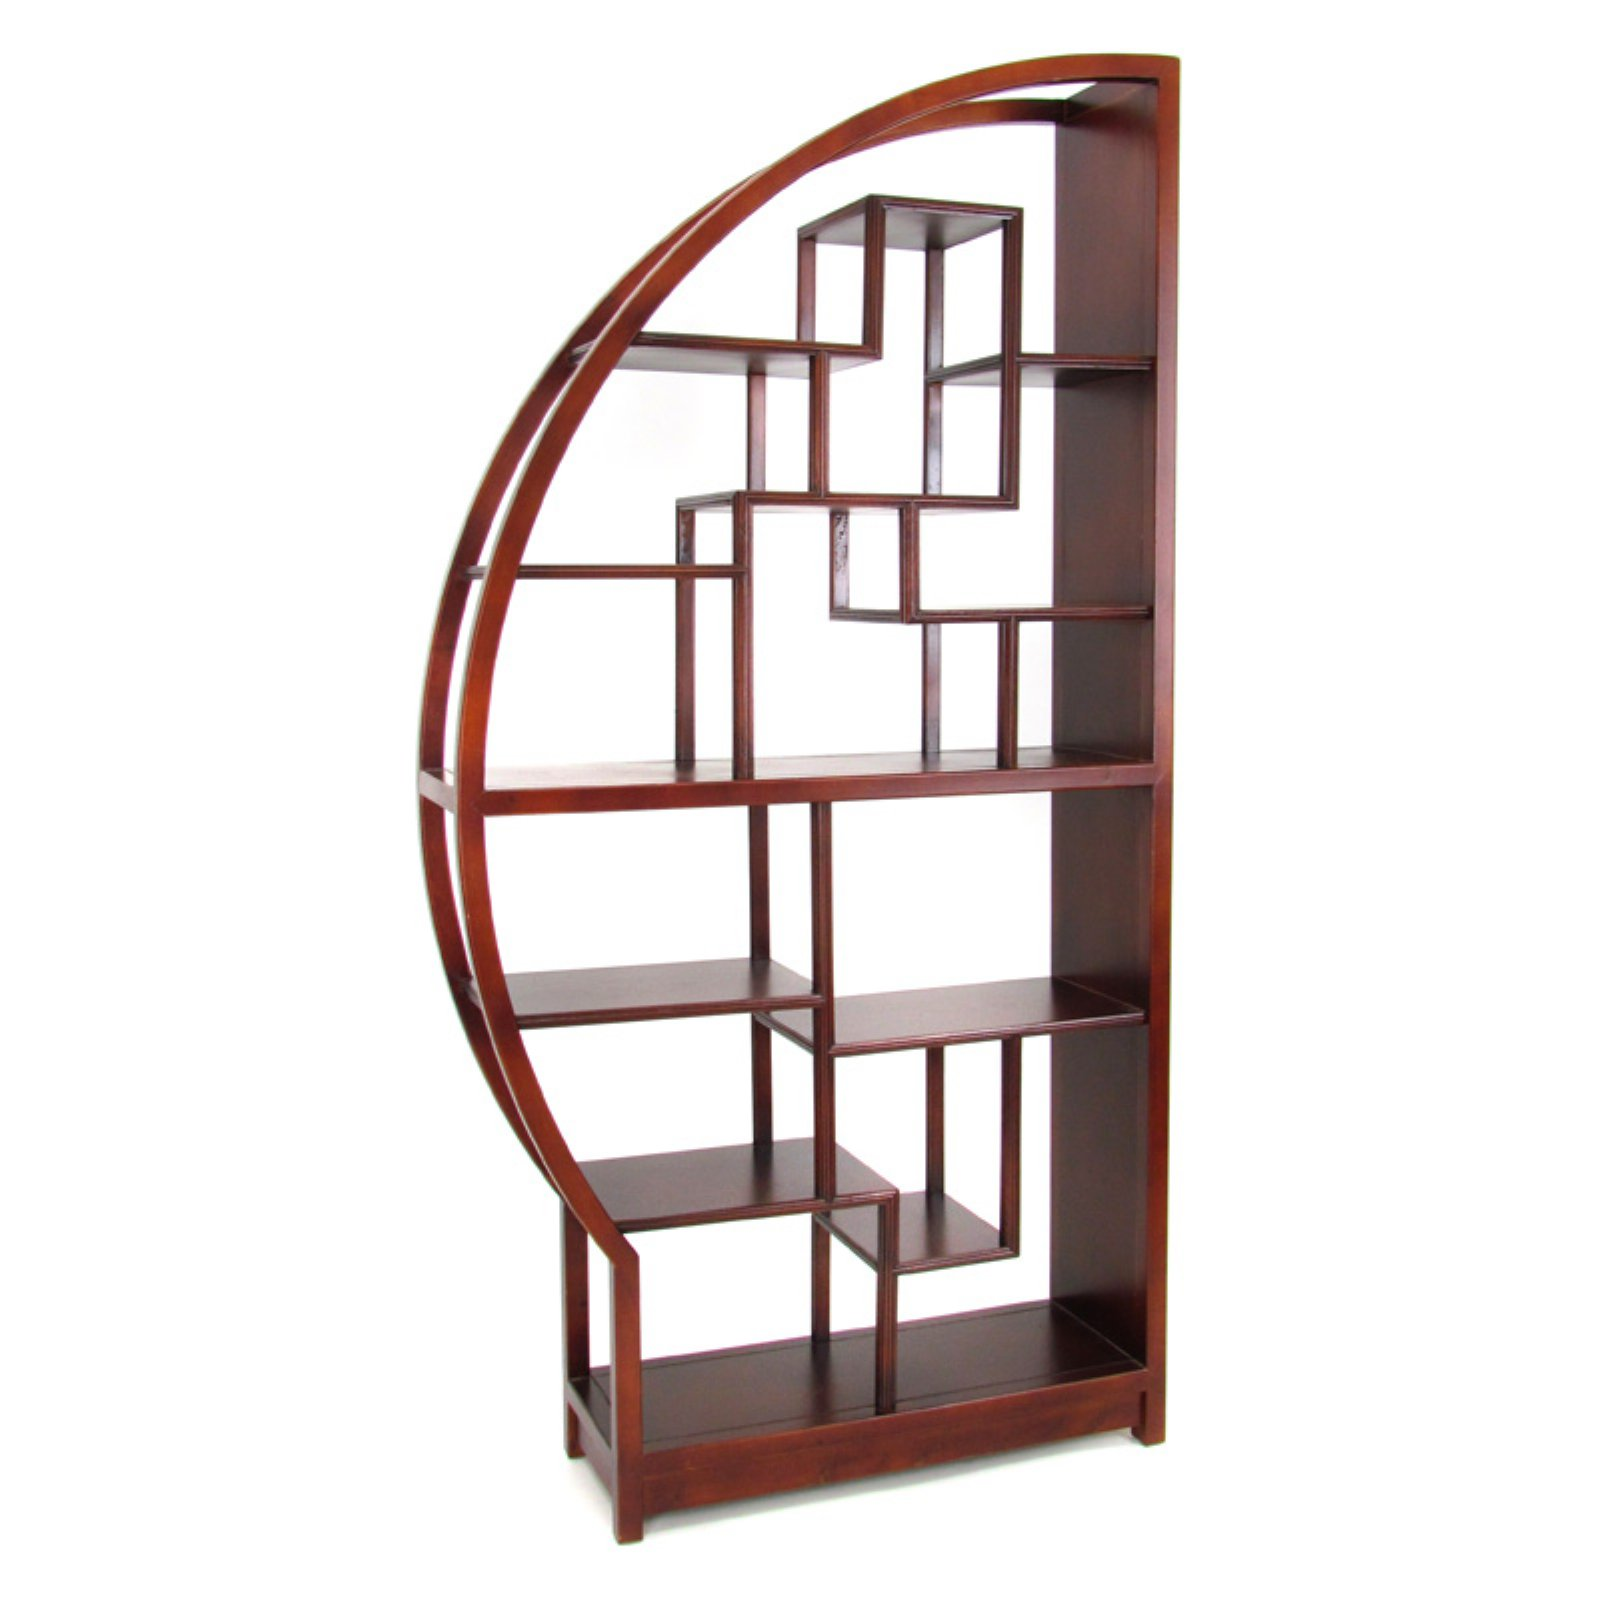 Wayborn Etagere Half Moon Display Bookcase Room Divider